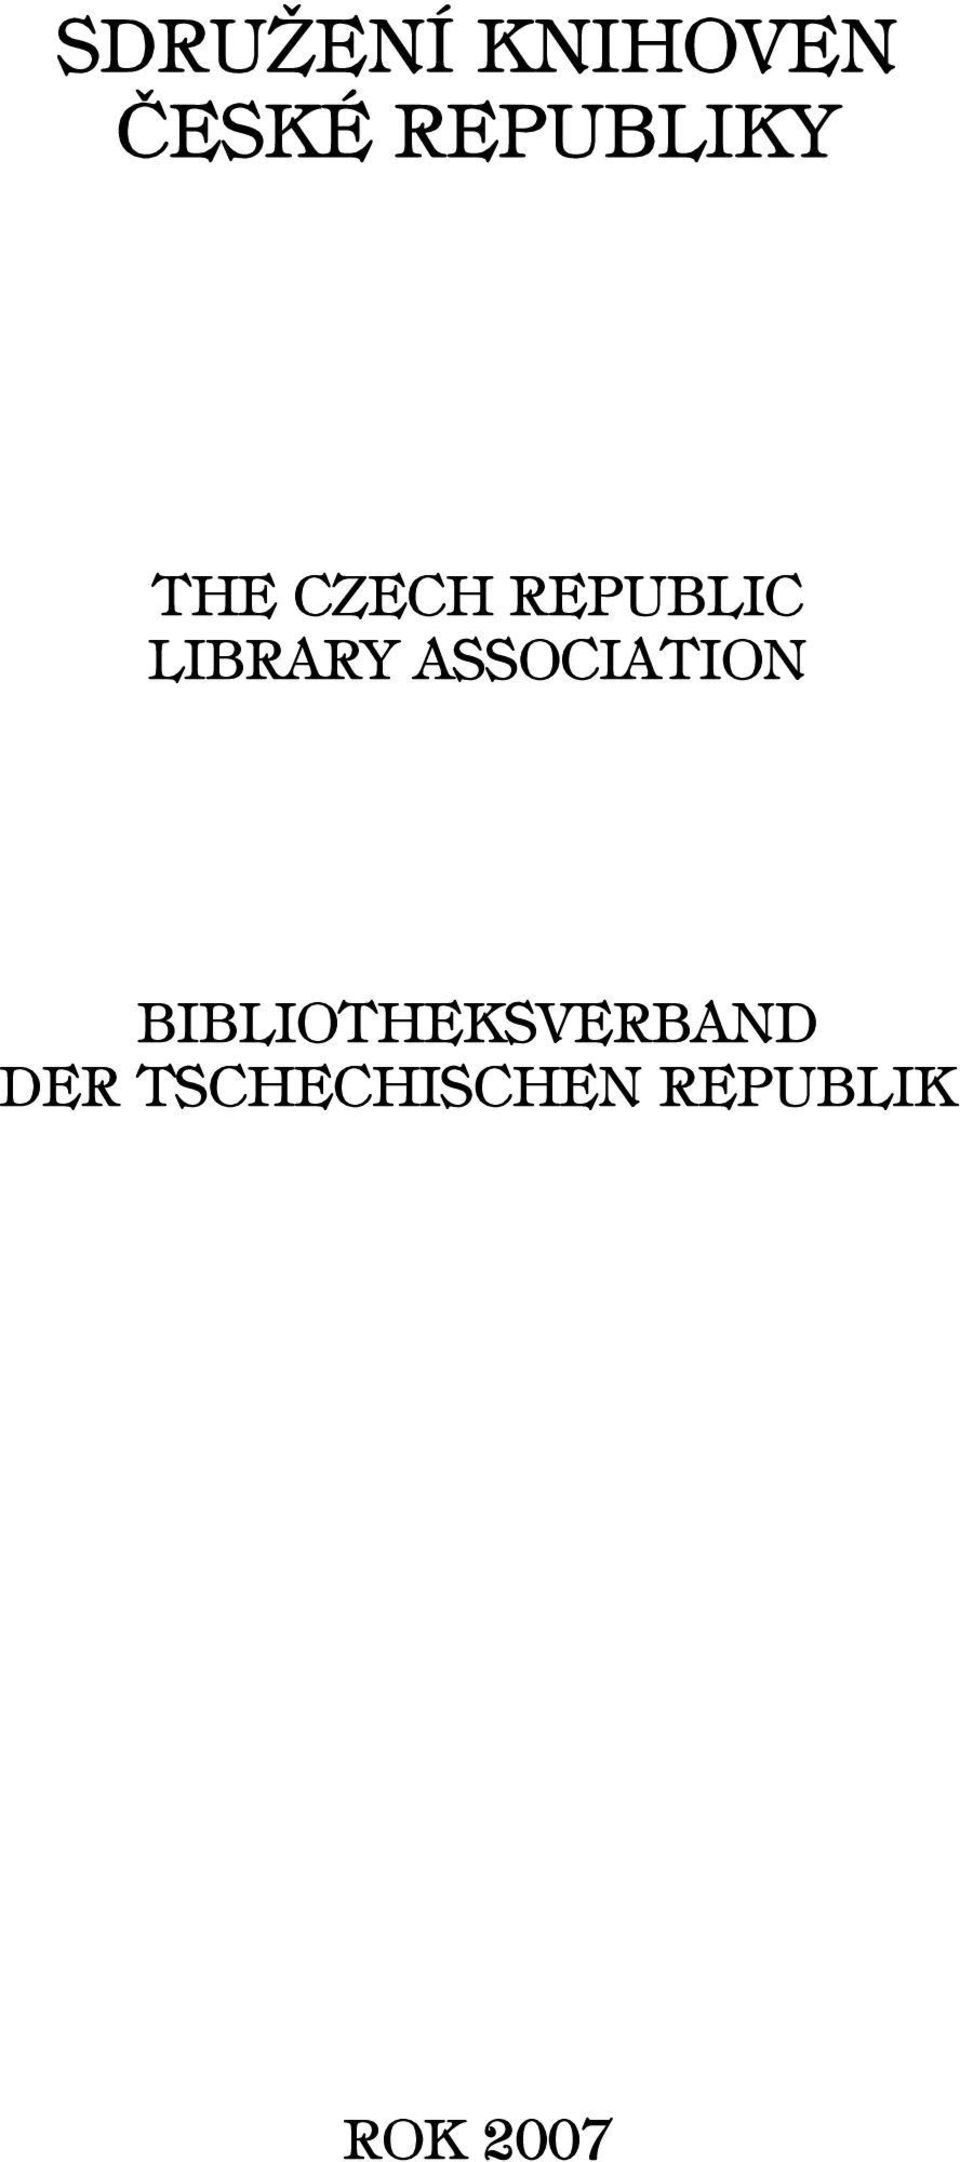 LIBRARY ASSOCIATION